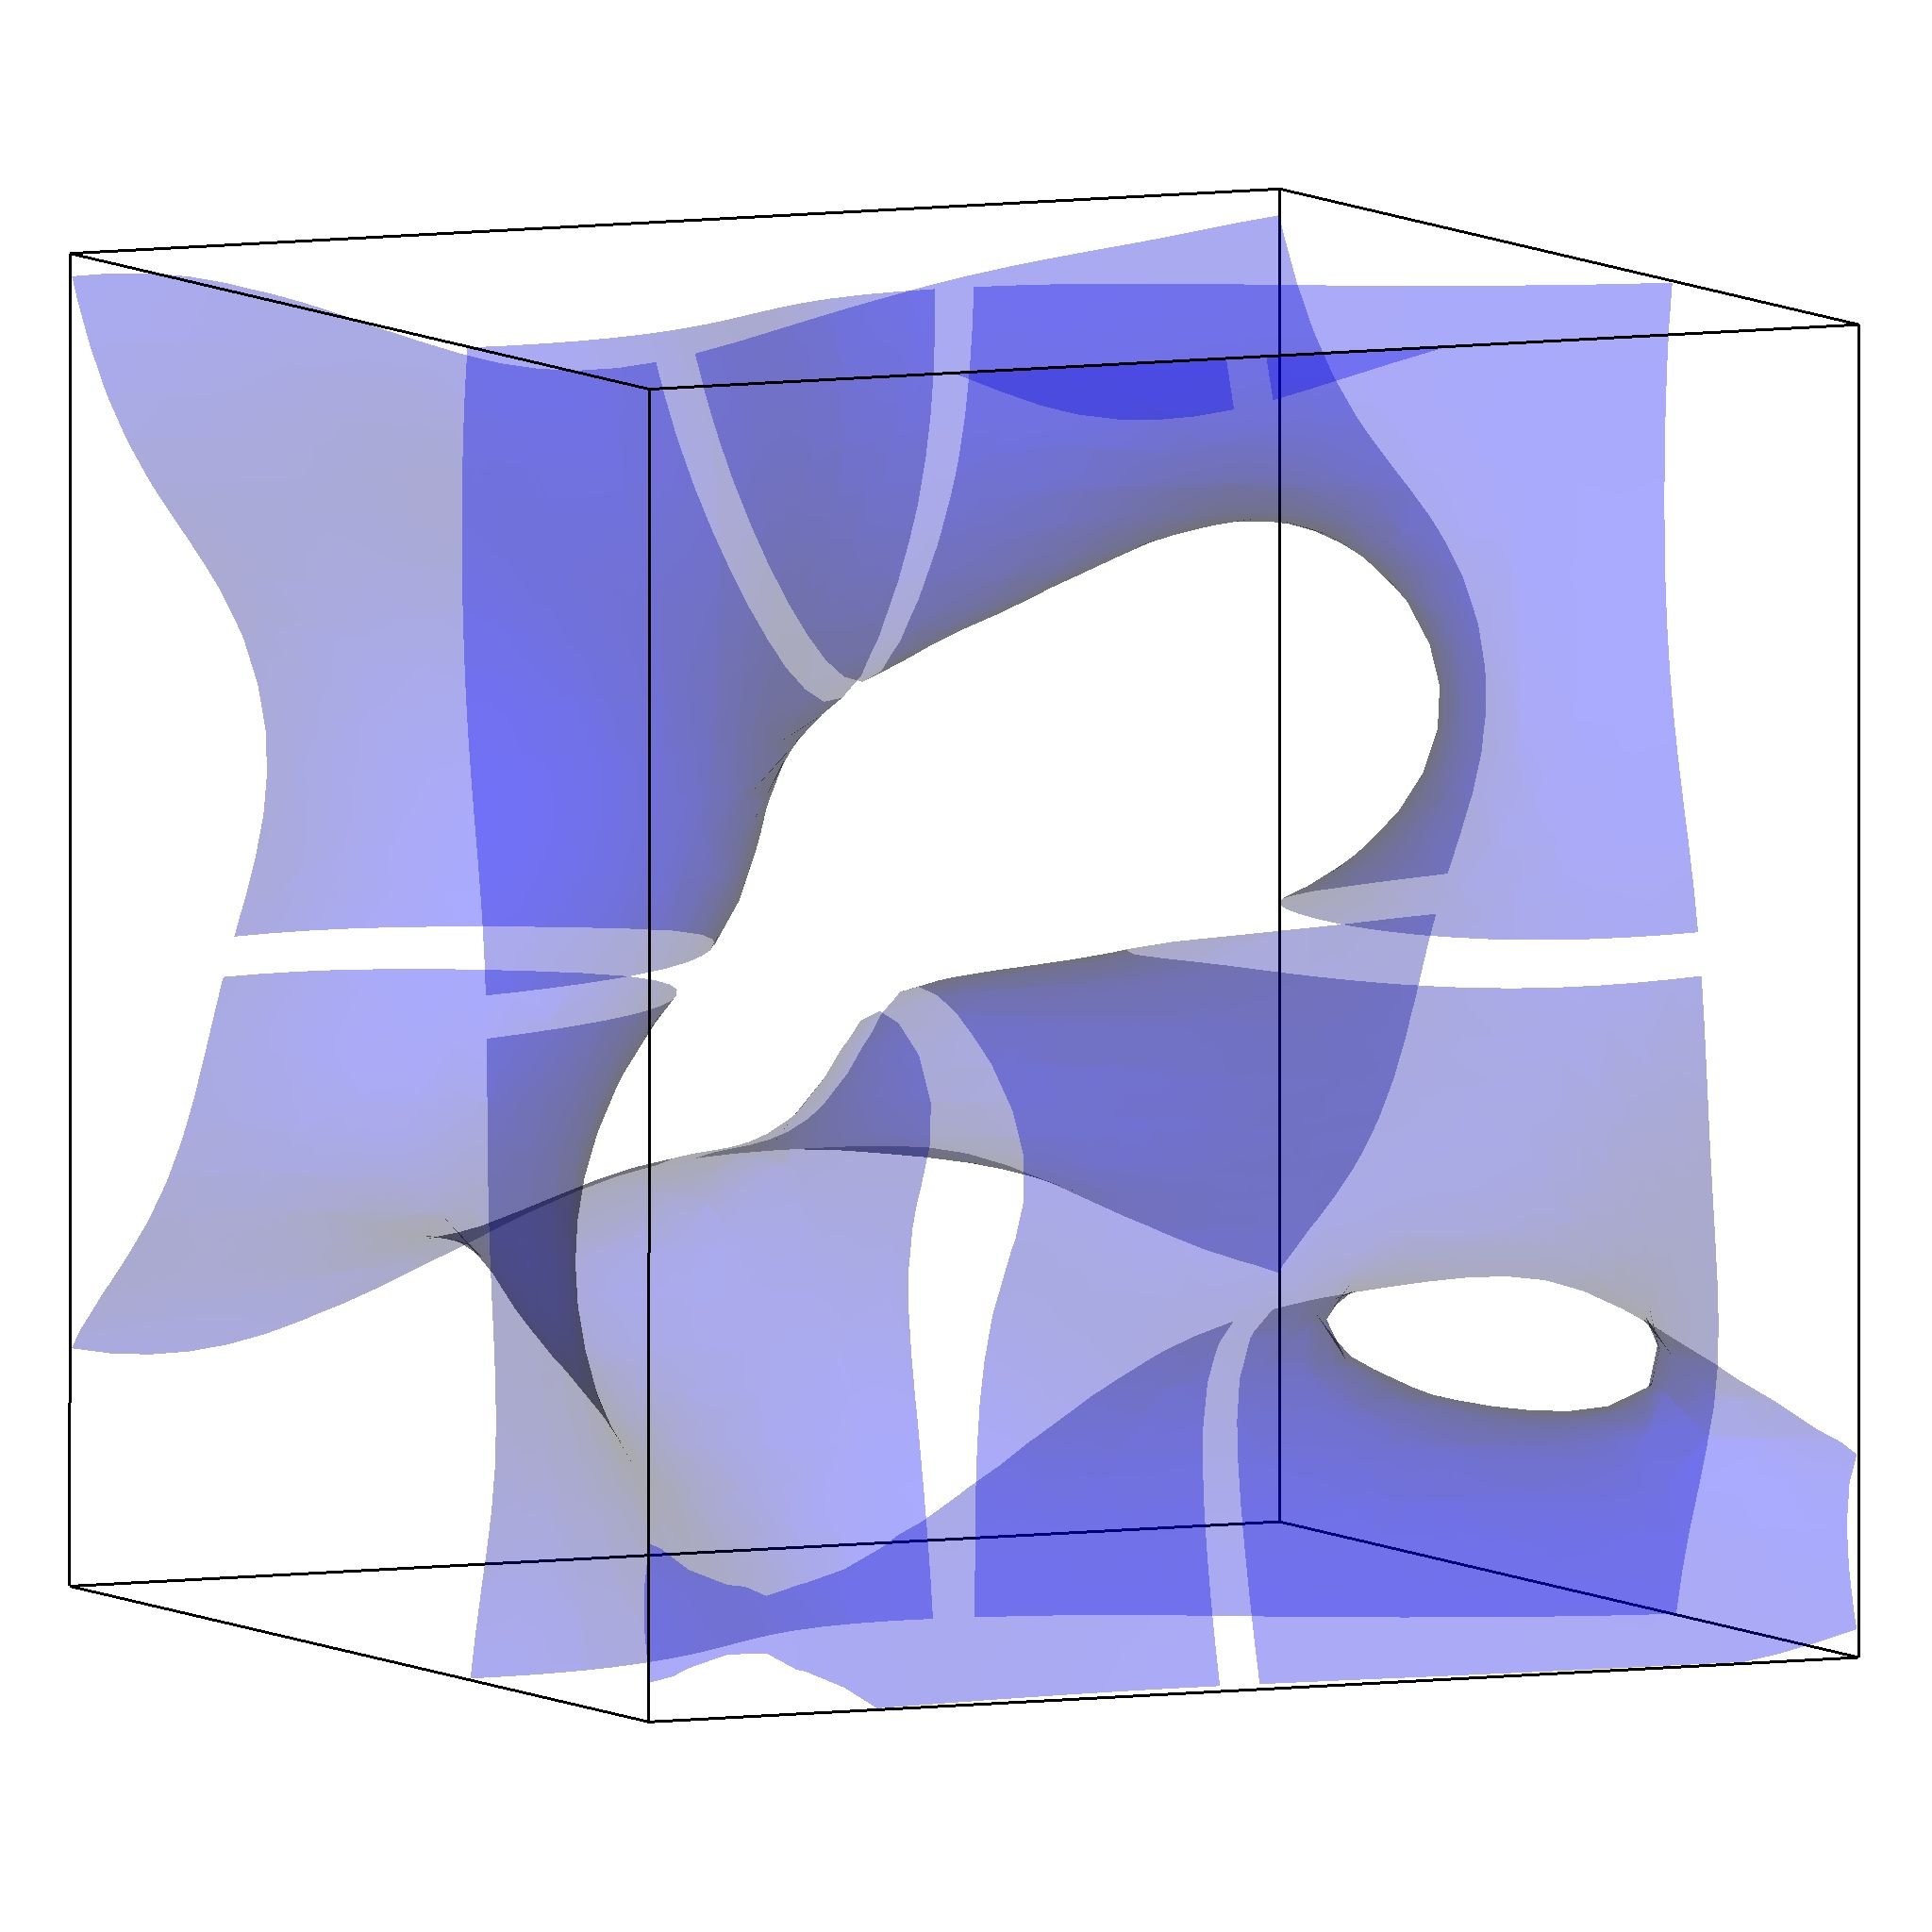 Visualisation of an isosurface in VisIt with gaps, rather than ghost zones.